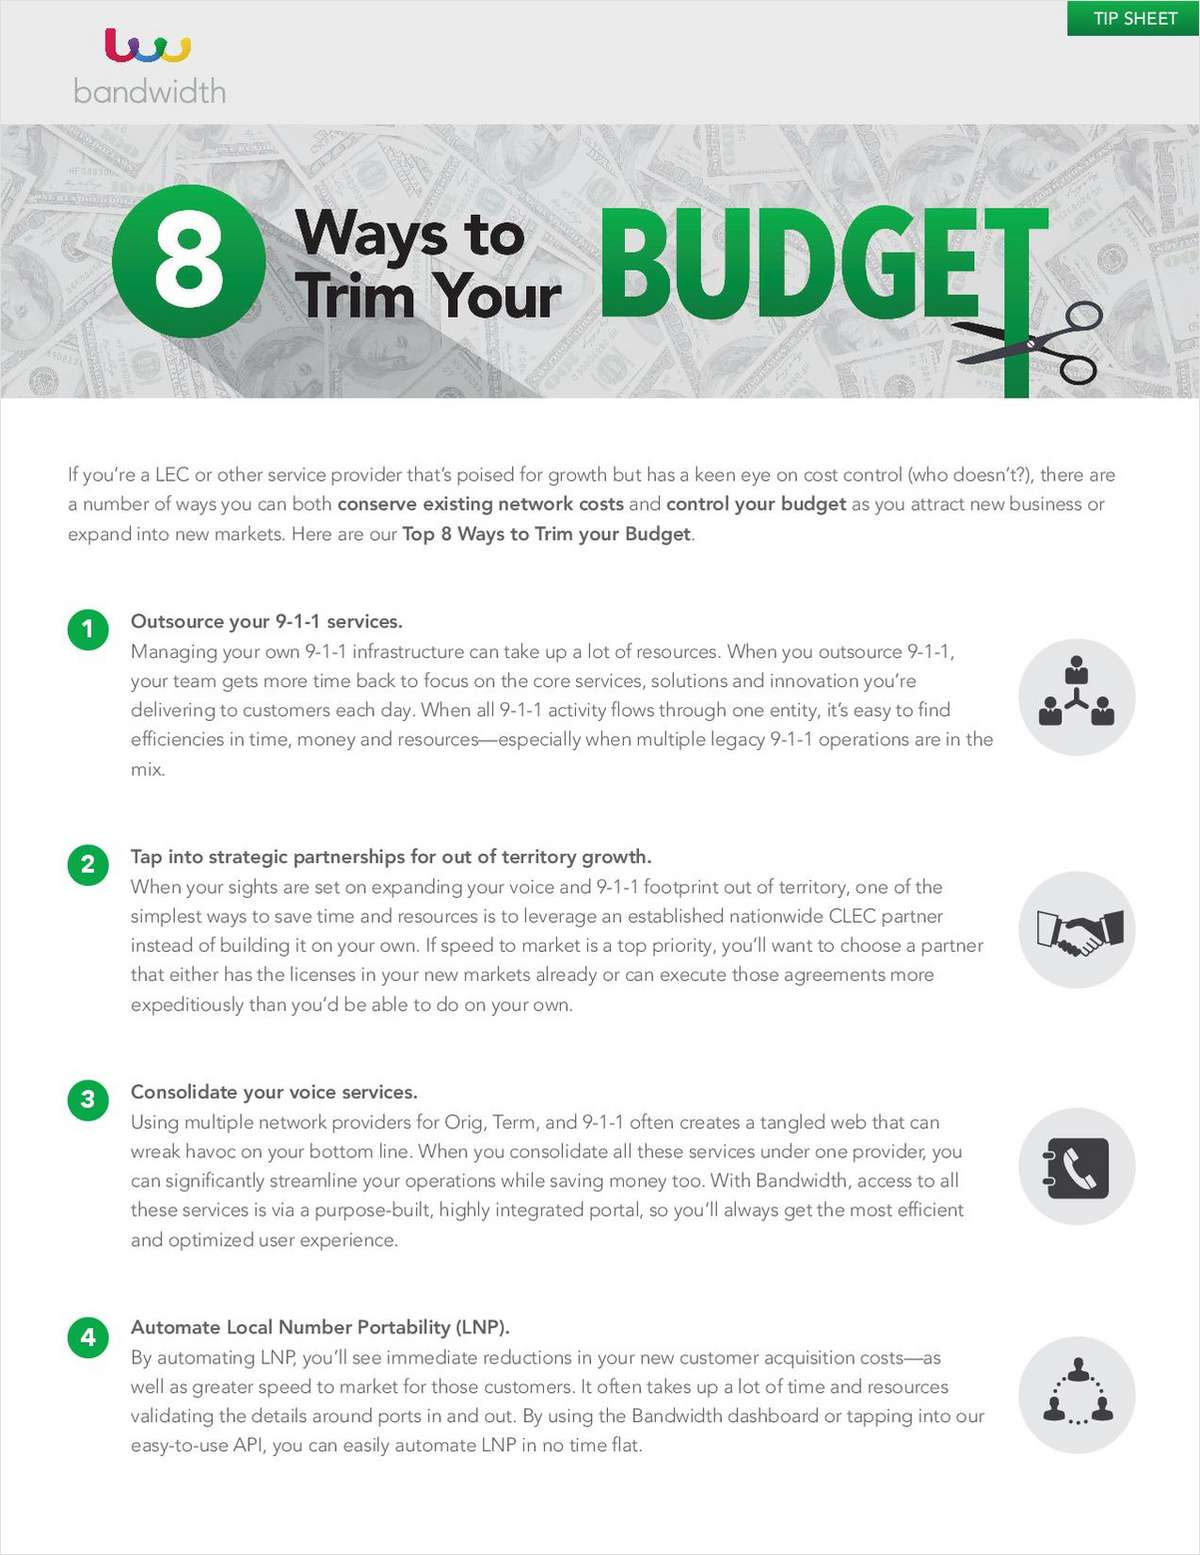 8 Ways to Trim Your Budget